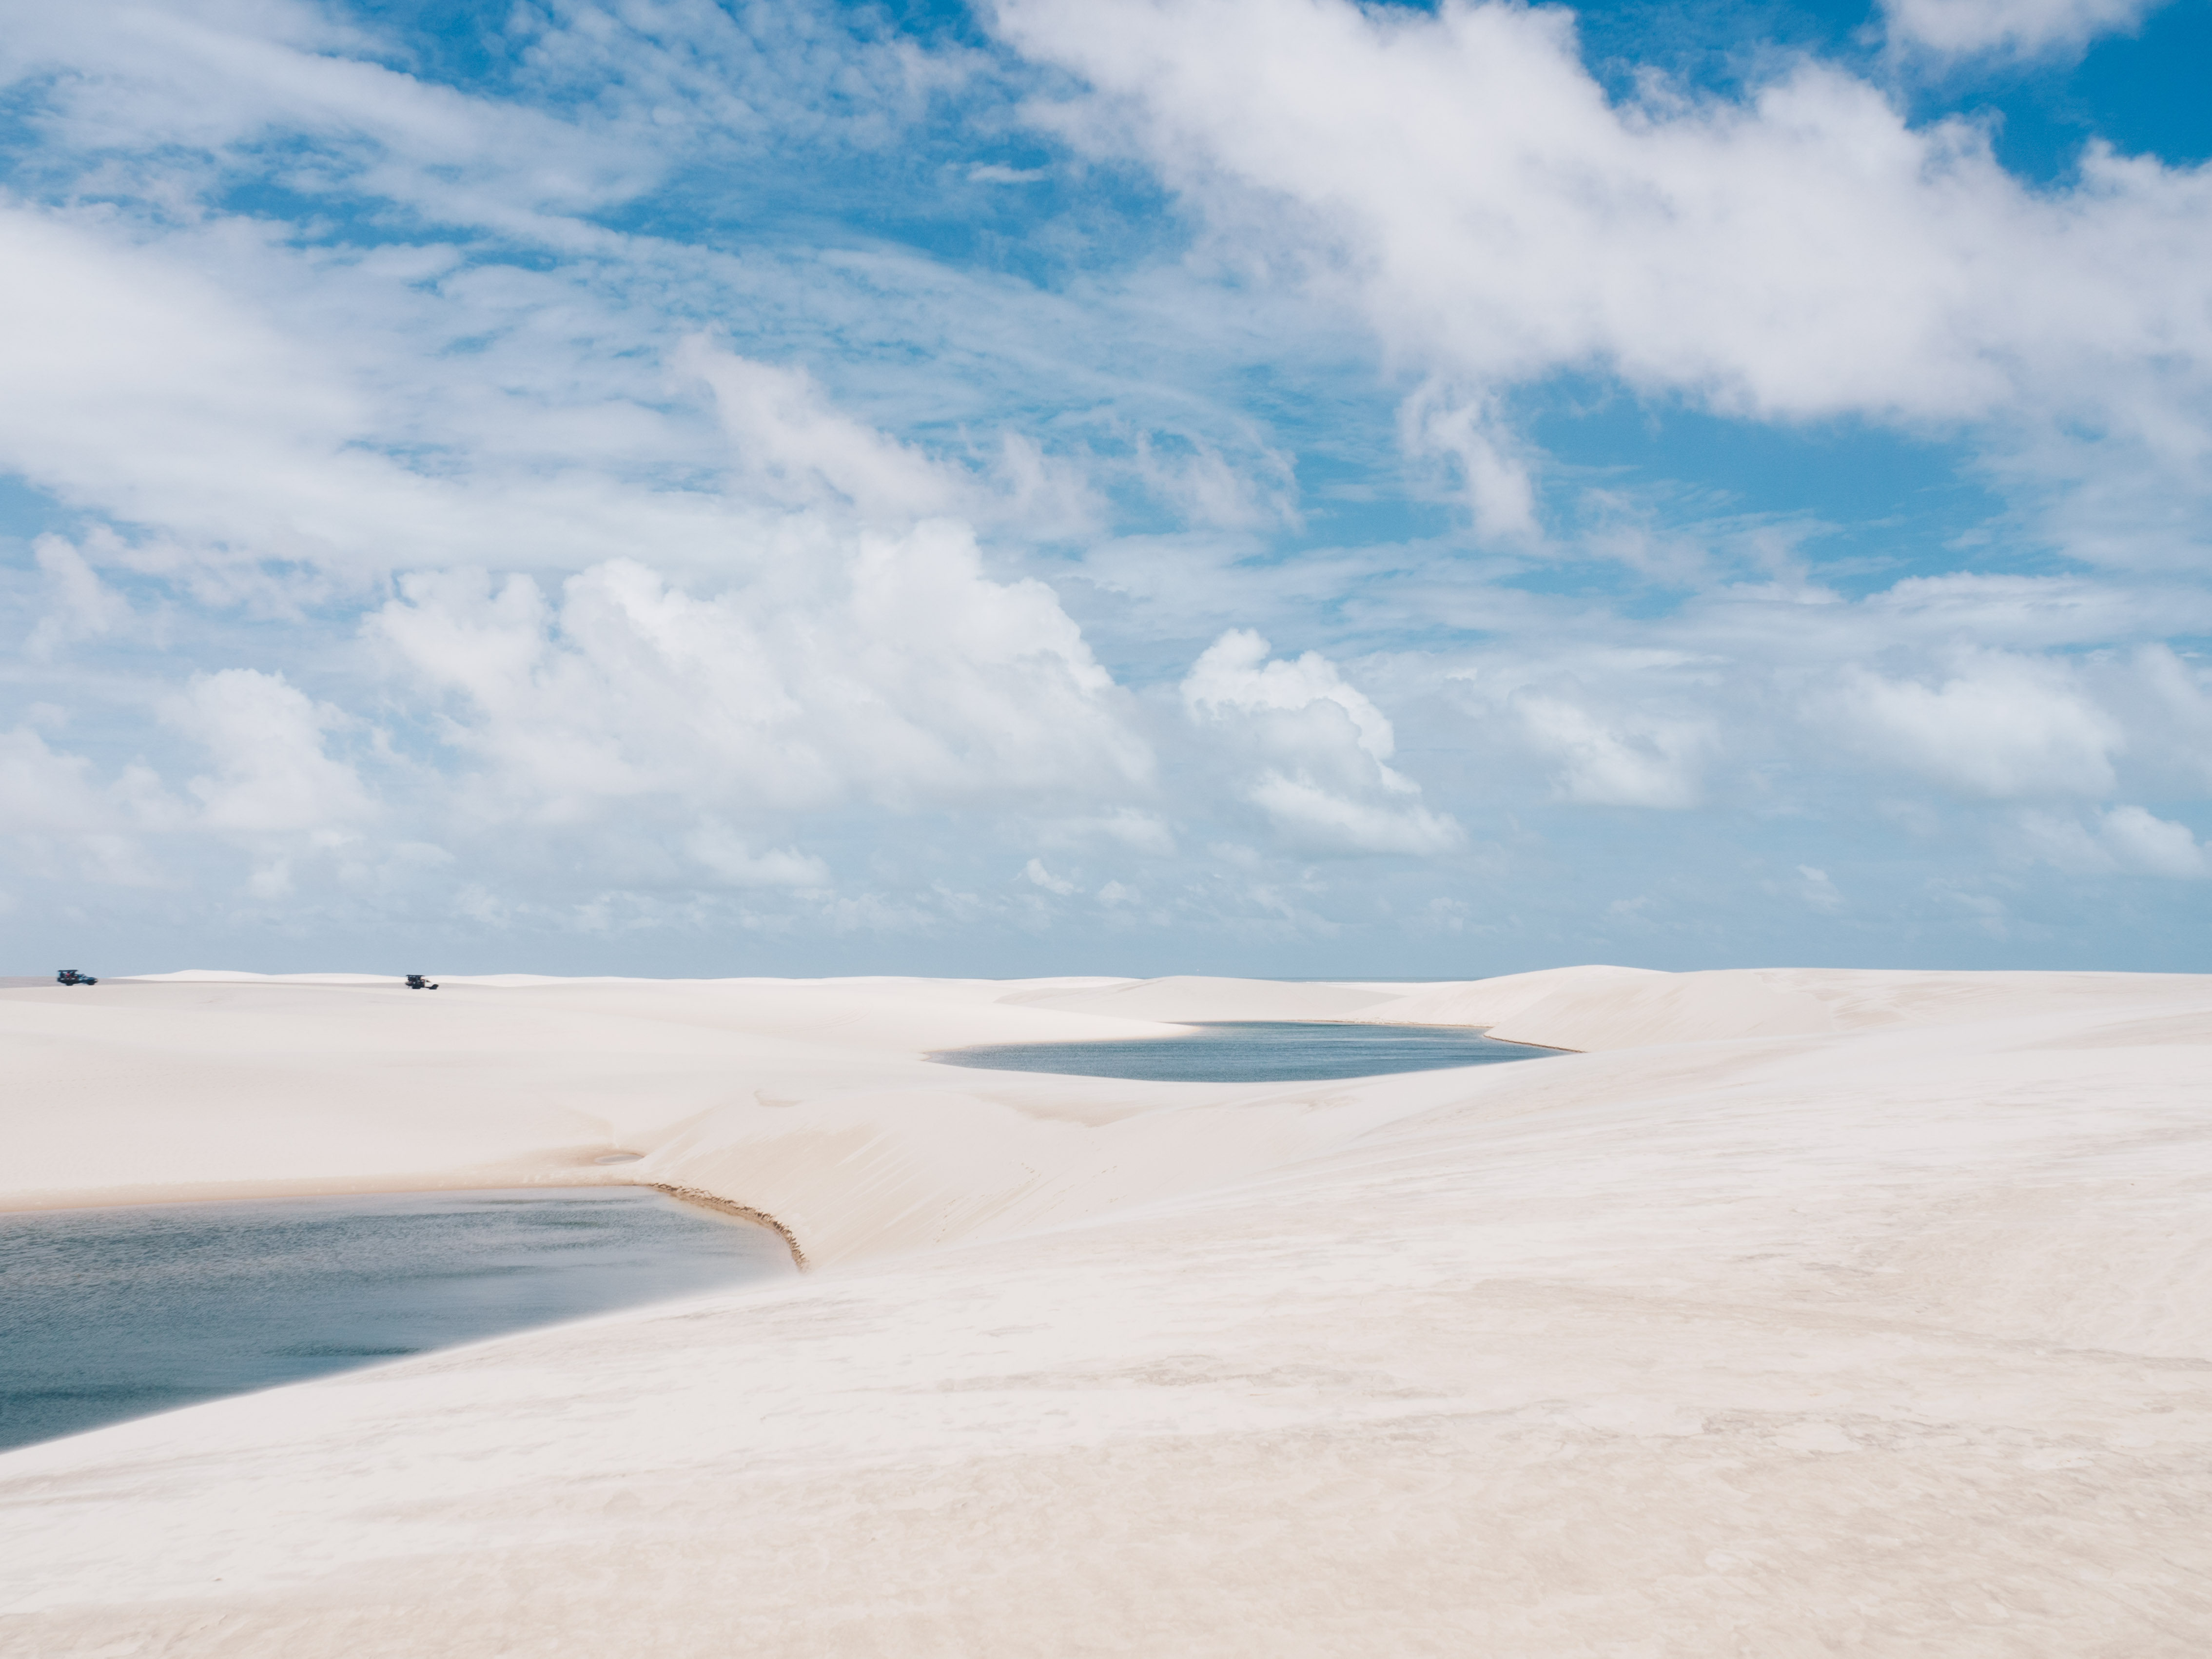 Image for blog article: Atins-Lencois Maranhenses